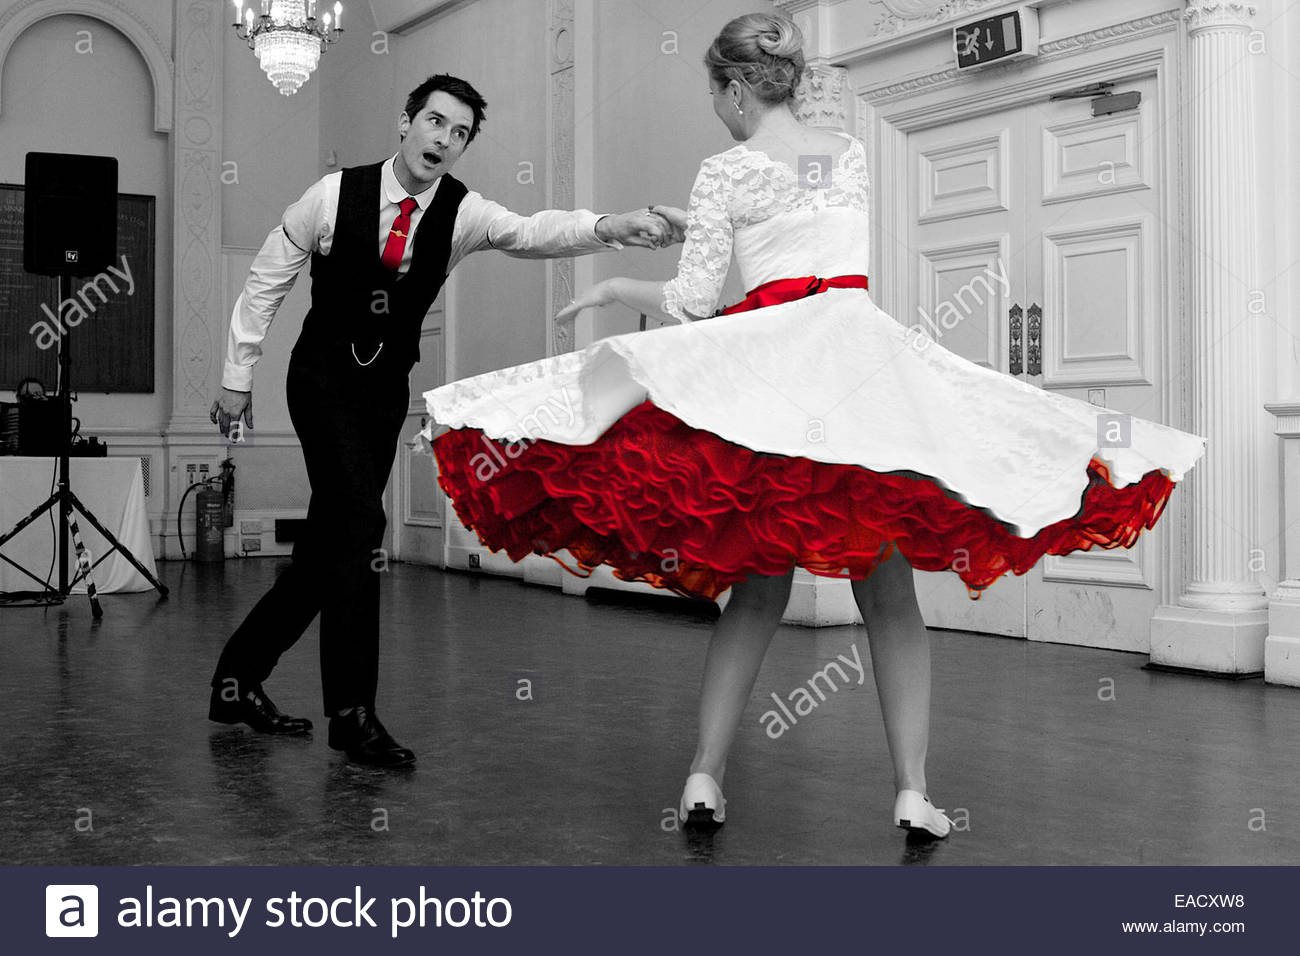 Wedding Couple Swing Dancing Red Petticoat Wedding Dress Stock